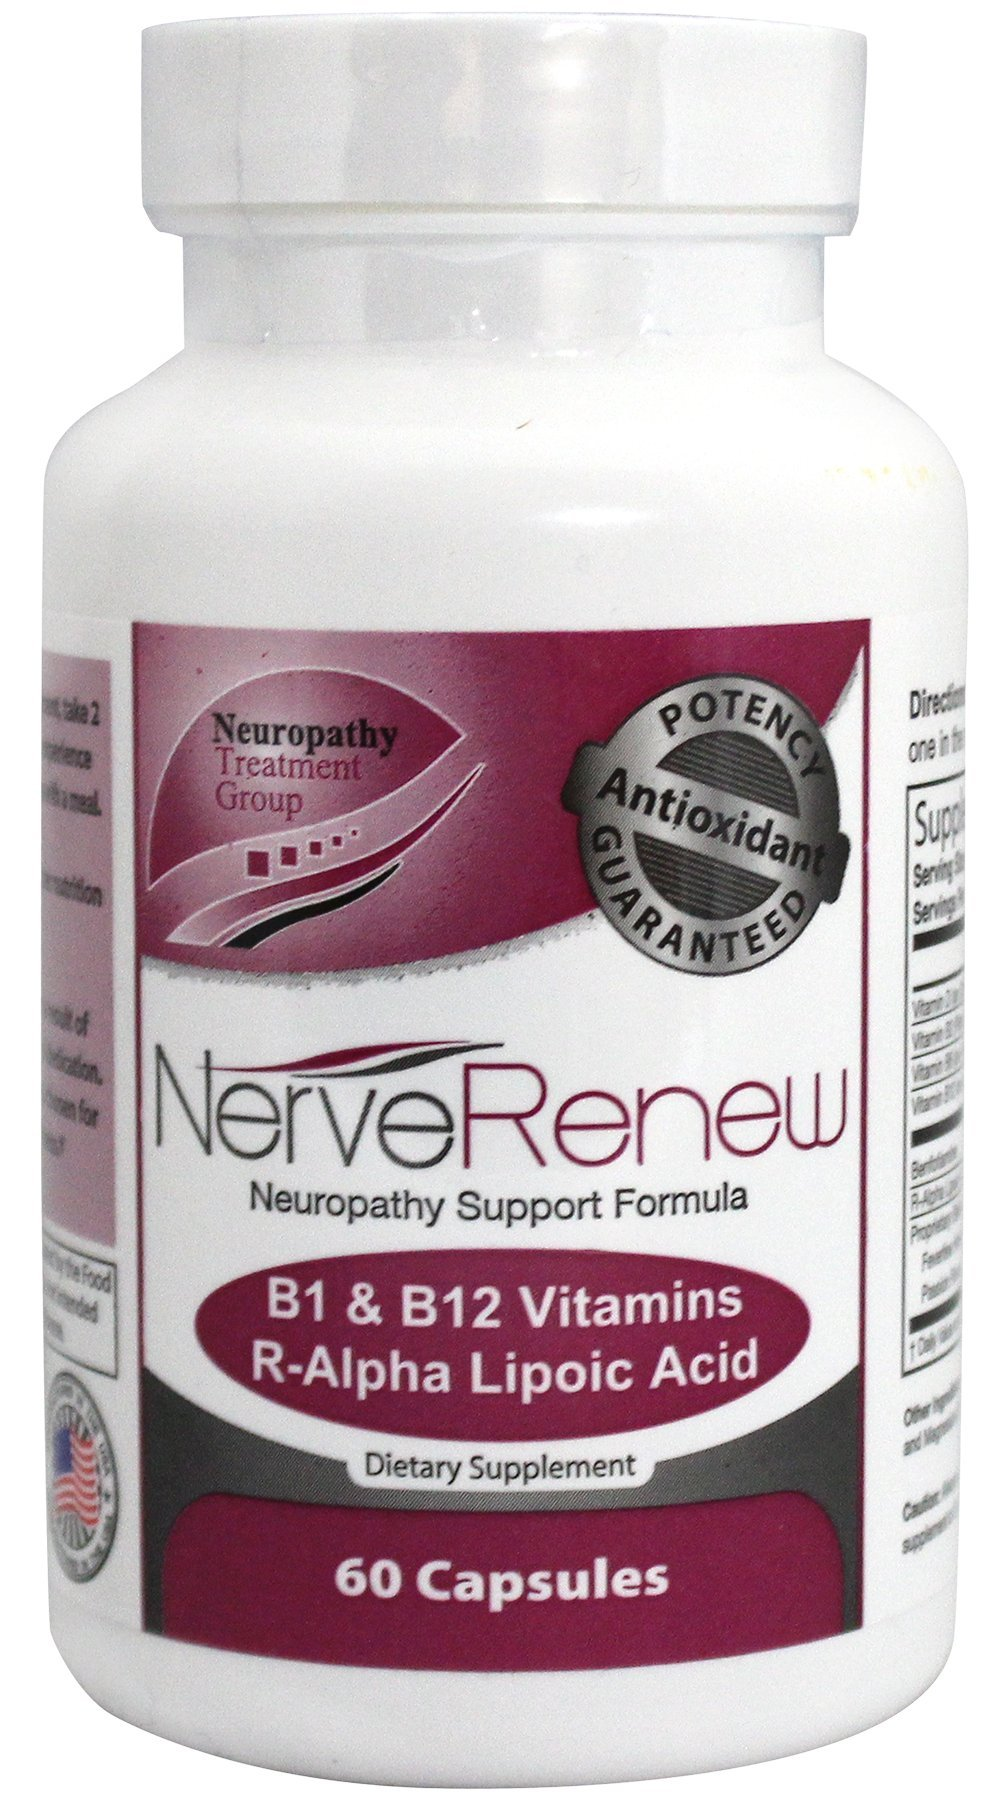 Life Renew: All-Natural Neuropathy Support Supplement with Stabilized R-Lipoic Acid - Absorbs Fast - Alternative Nerve Pain Treatment - 30 Day Supply (60 Count) by LifeRenew